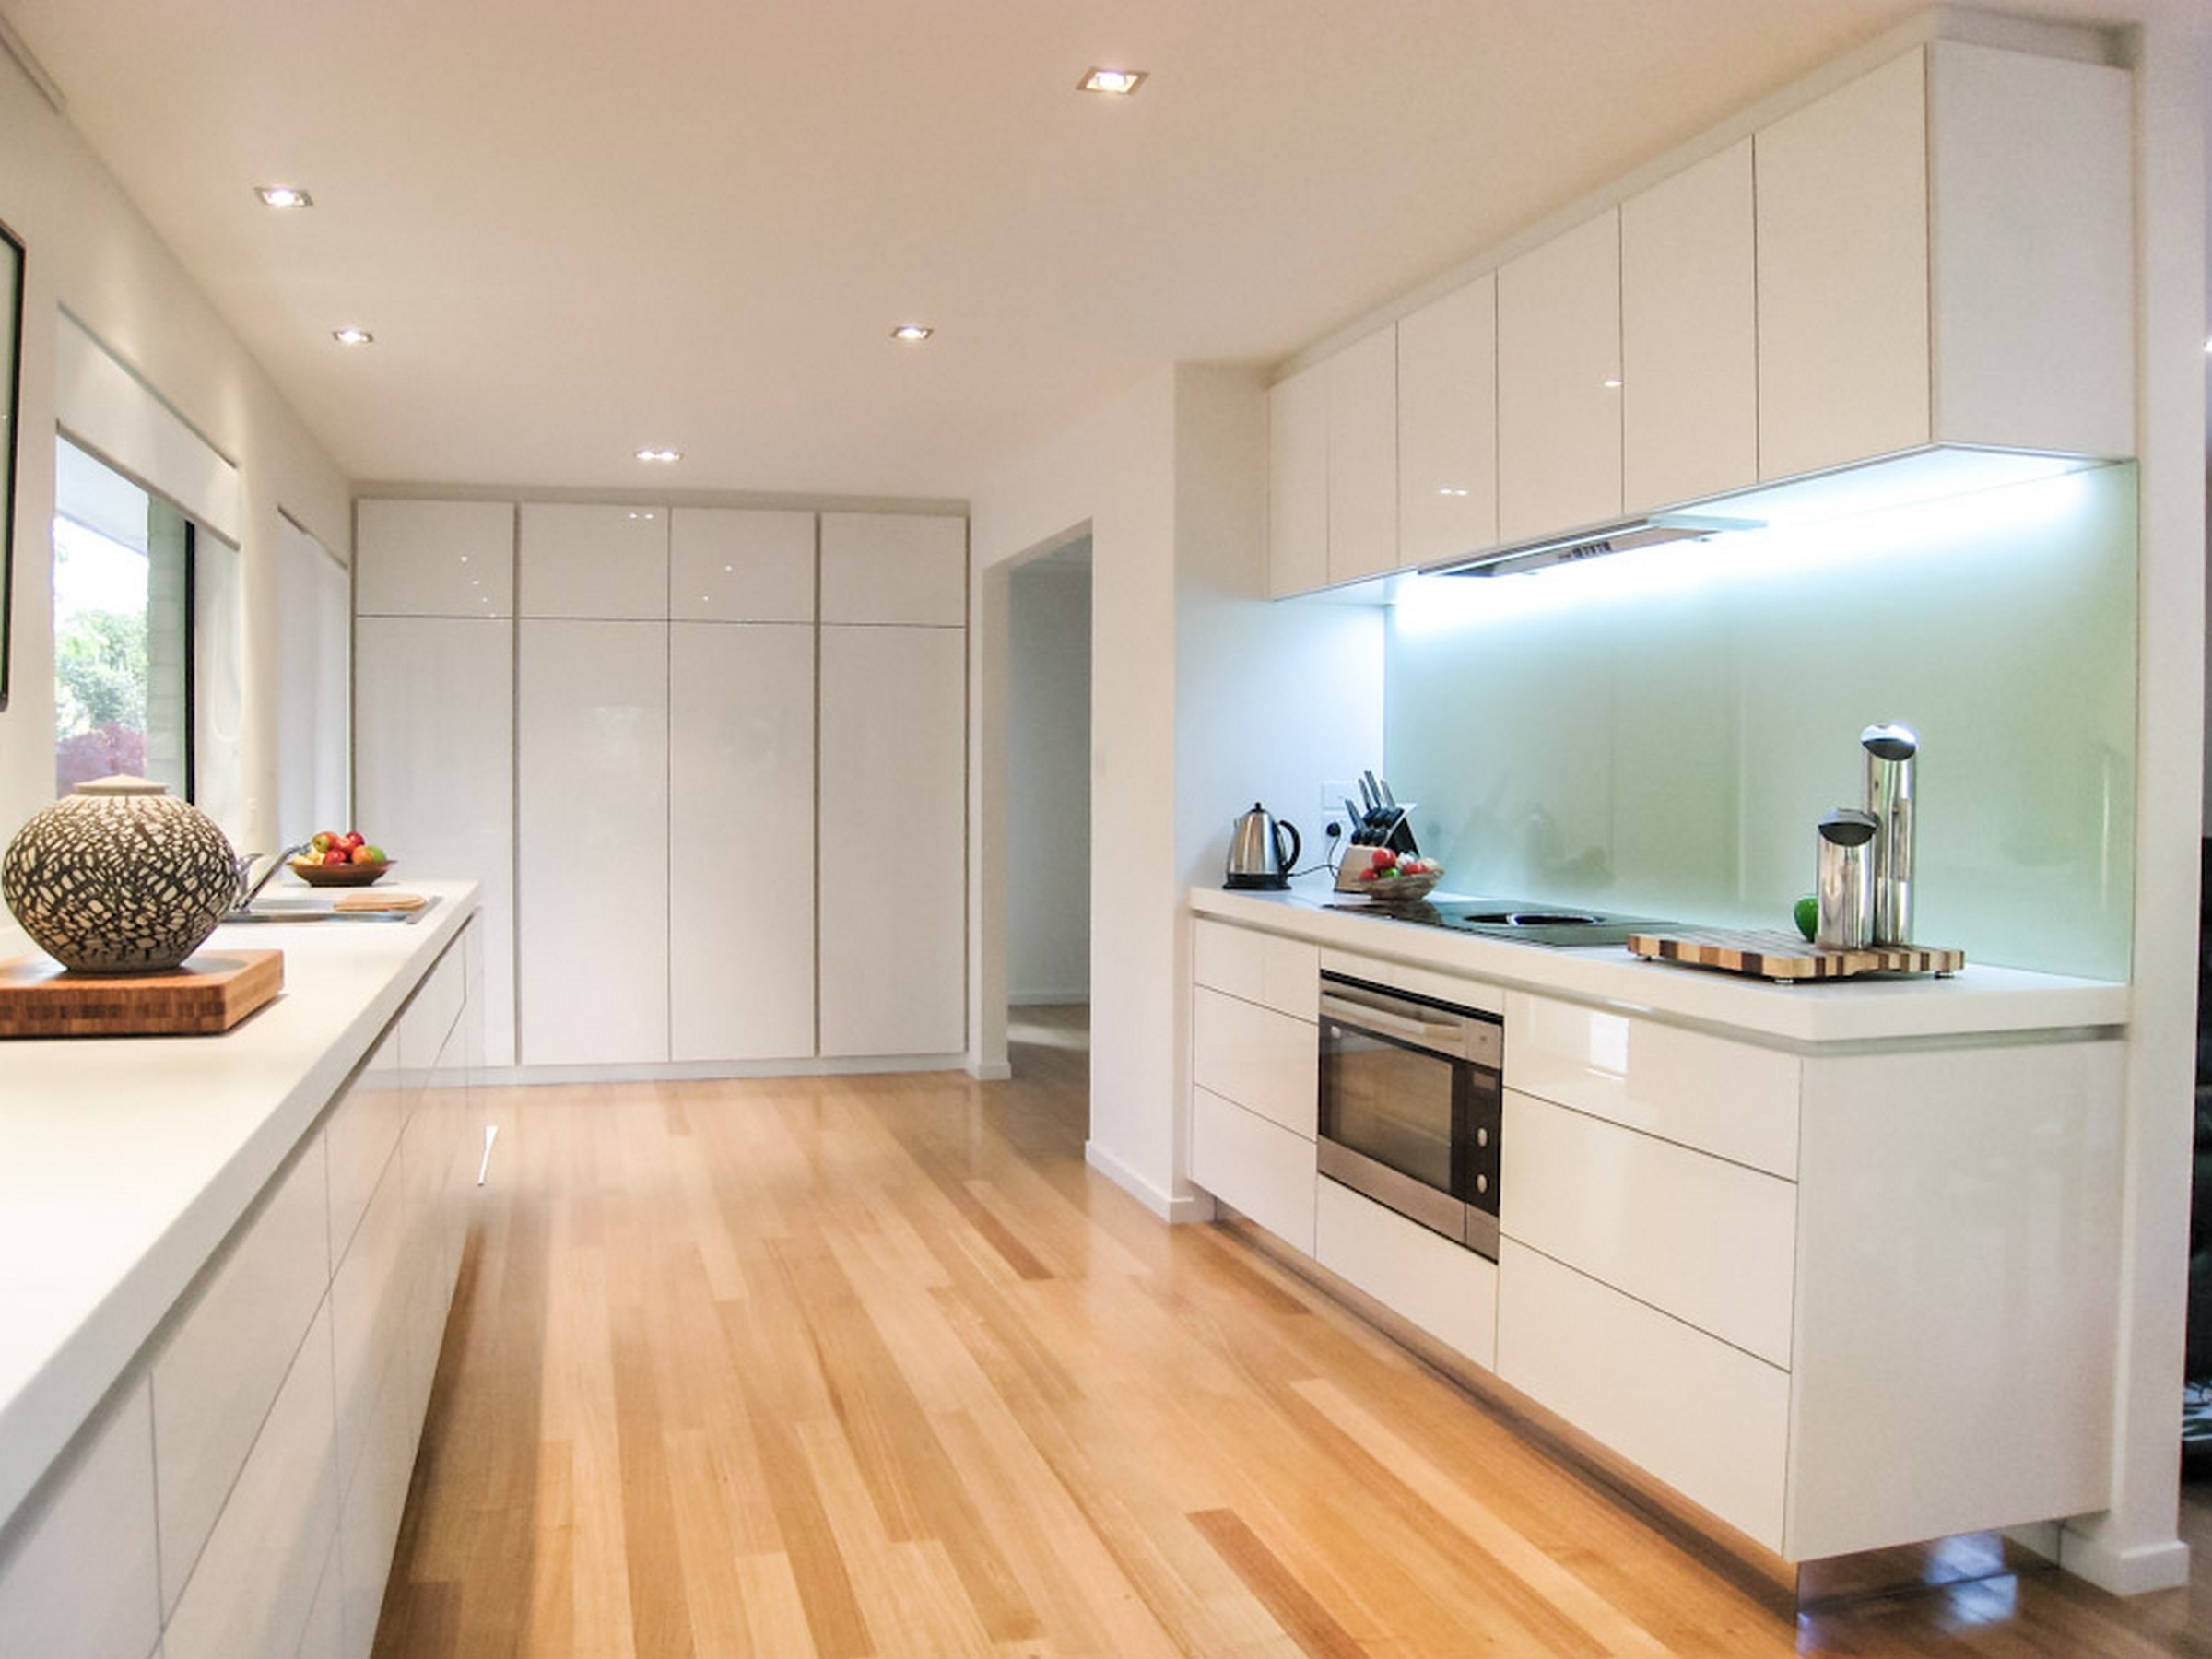 Kitchen Cabinets With No Hardware